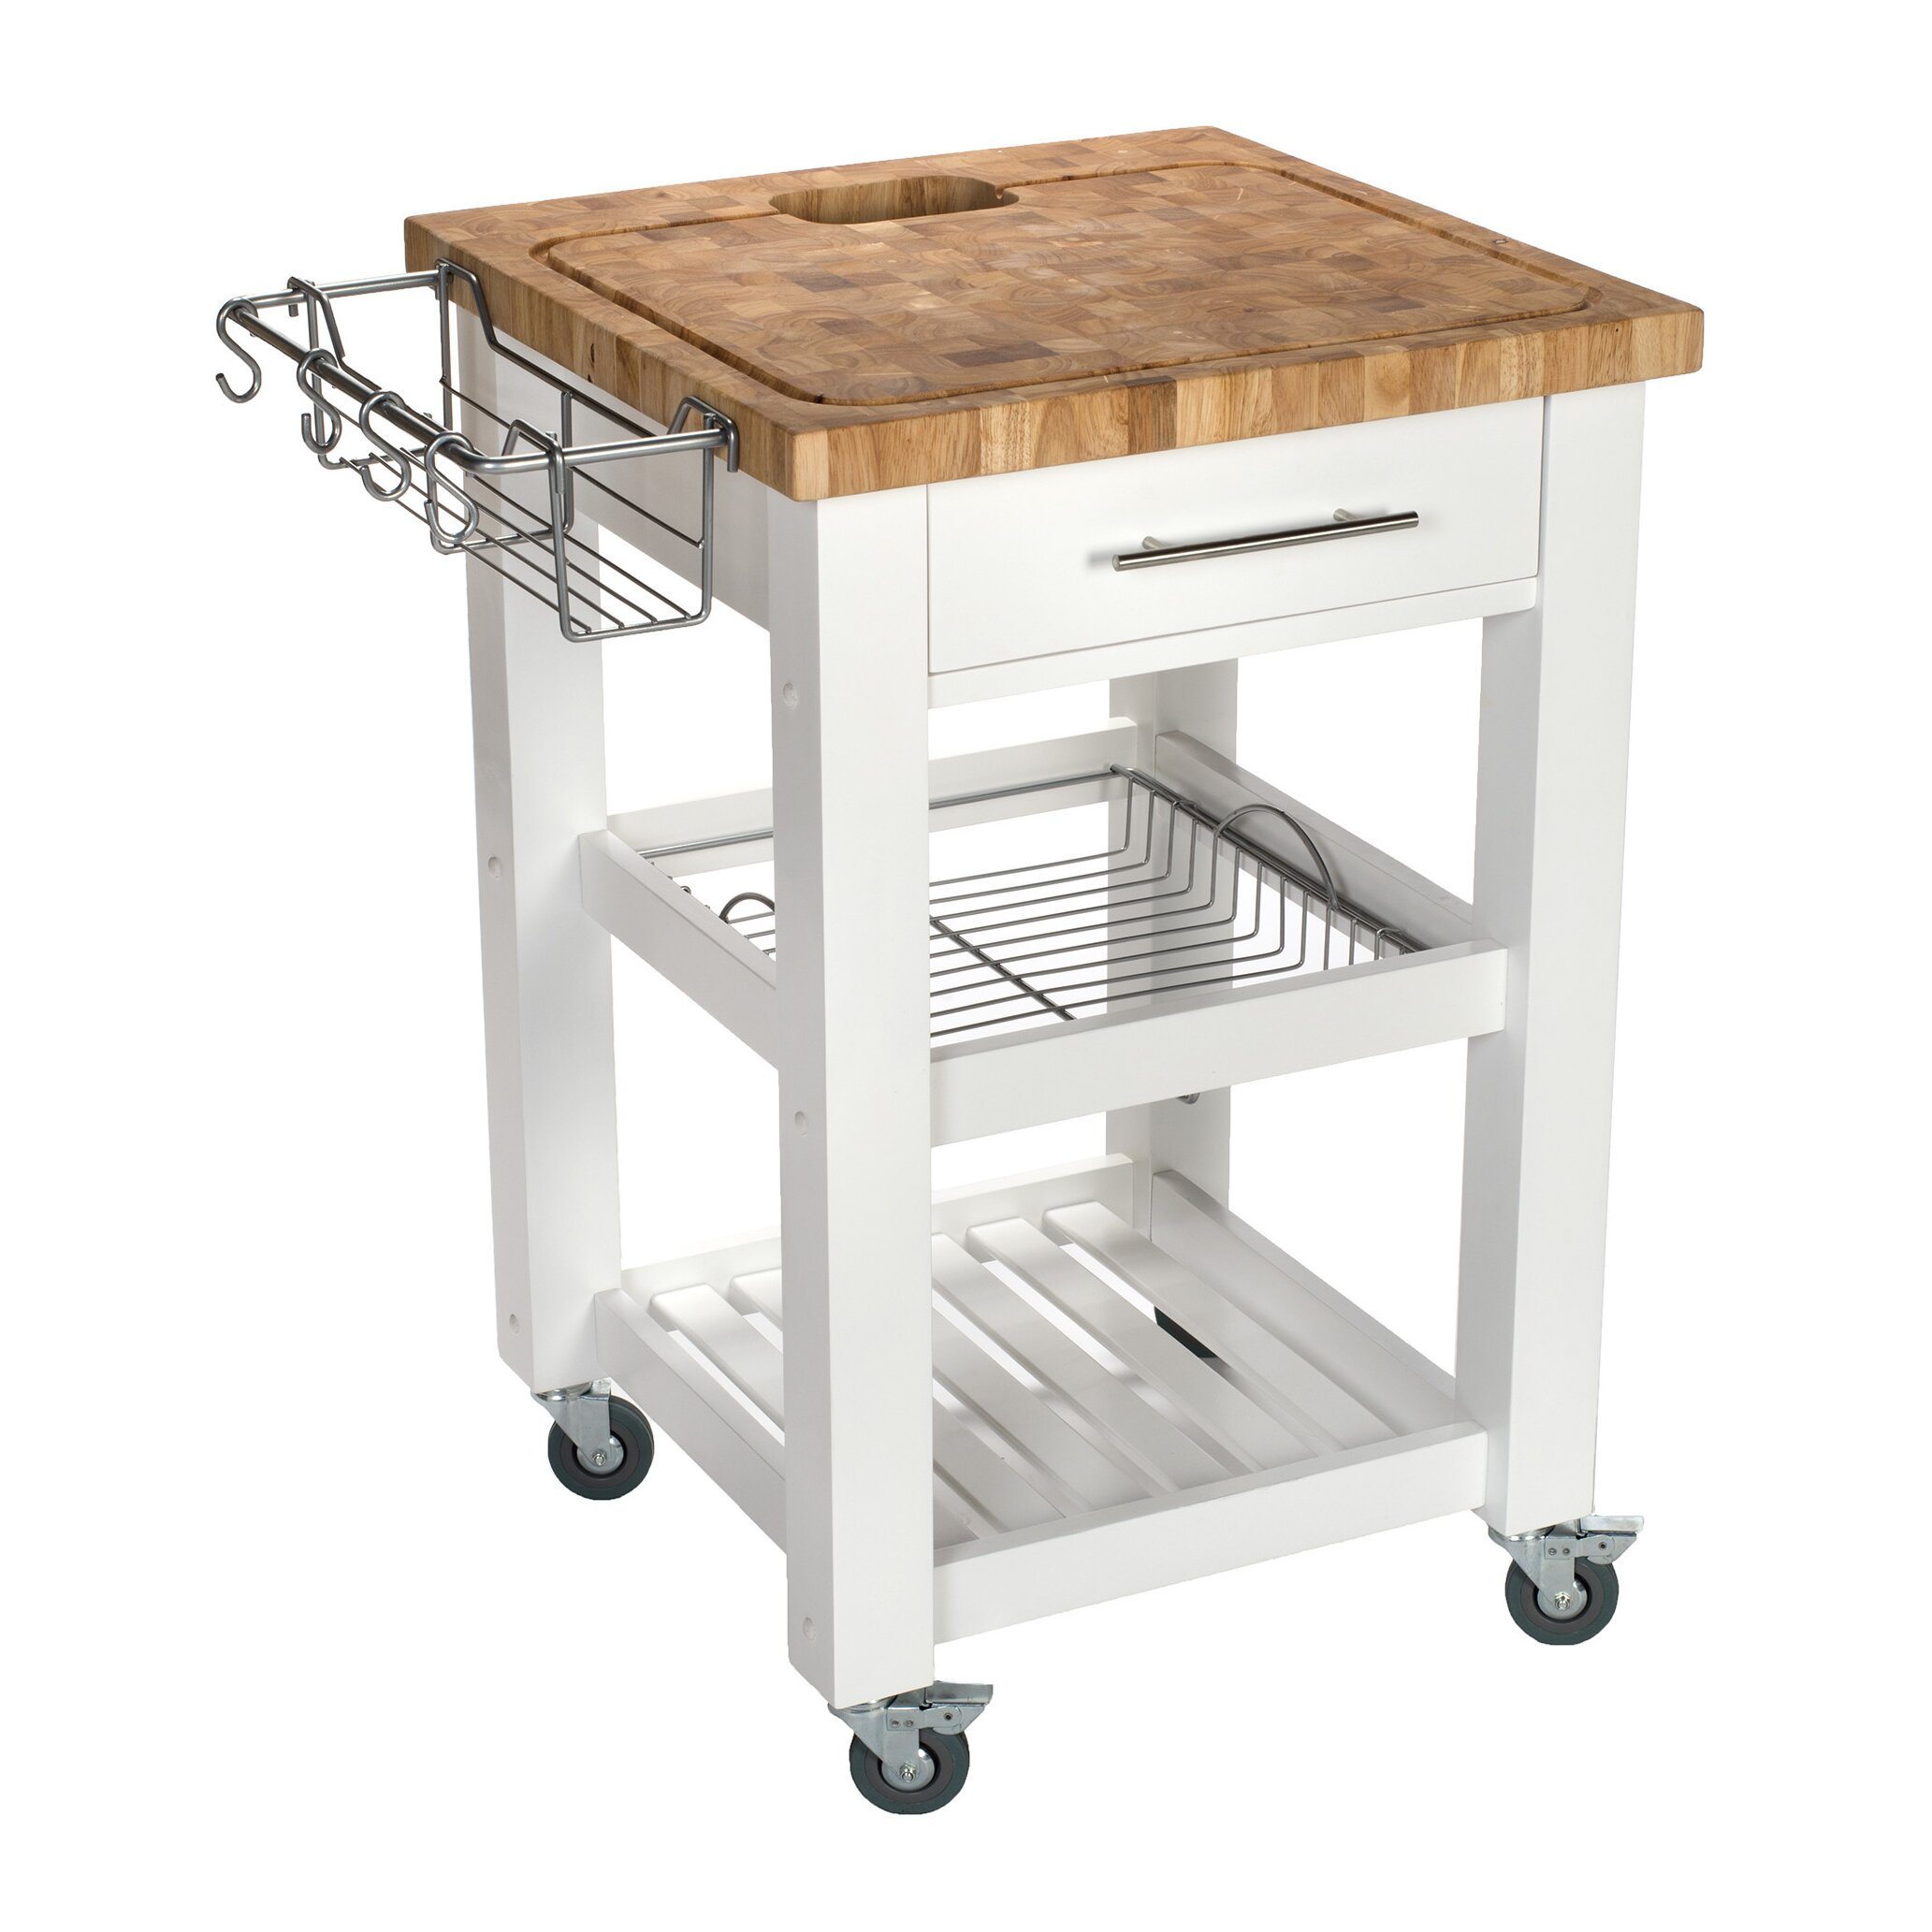 Chris & Chris Pro Chef Kitchen Cart with Butcher Block Top & Reviews Wayfair.ca